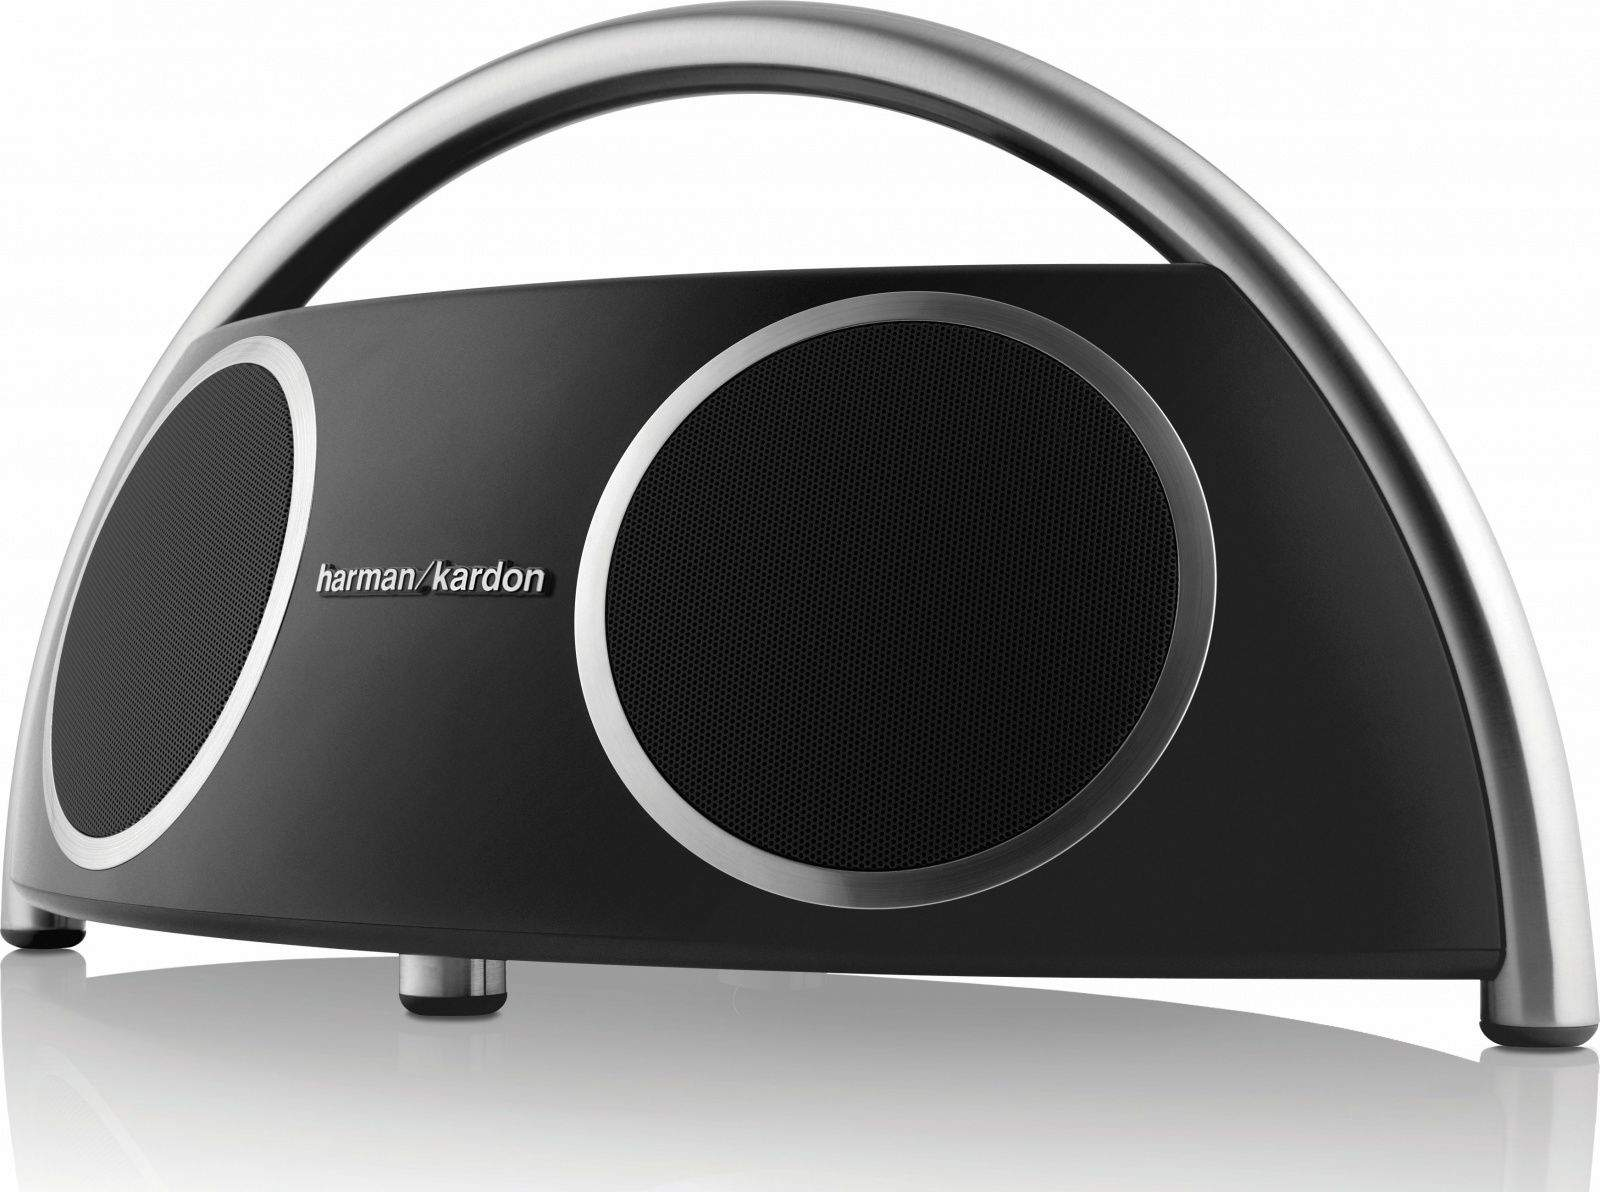 The Harman Kardon Go Play Wireless Is A Great Sounding